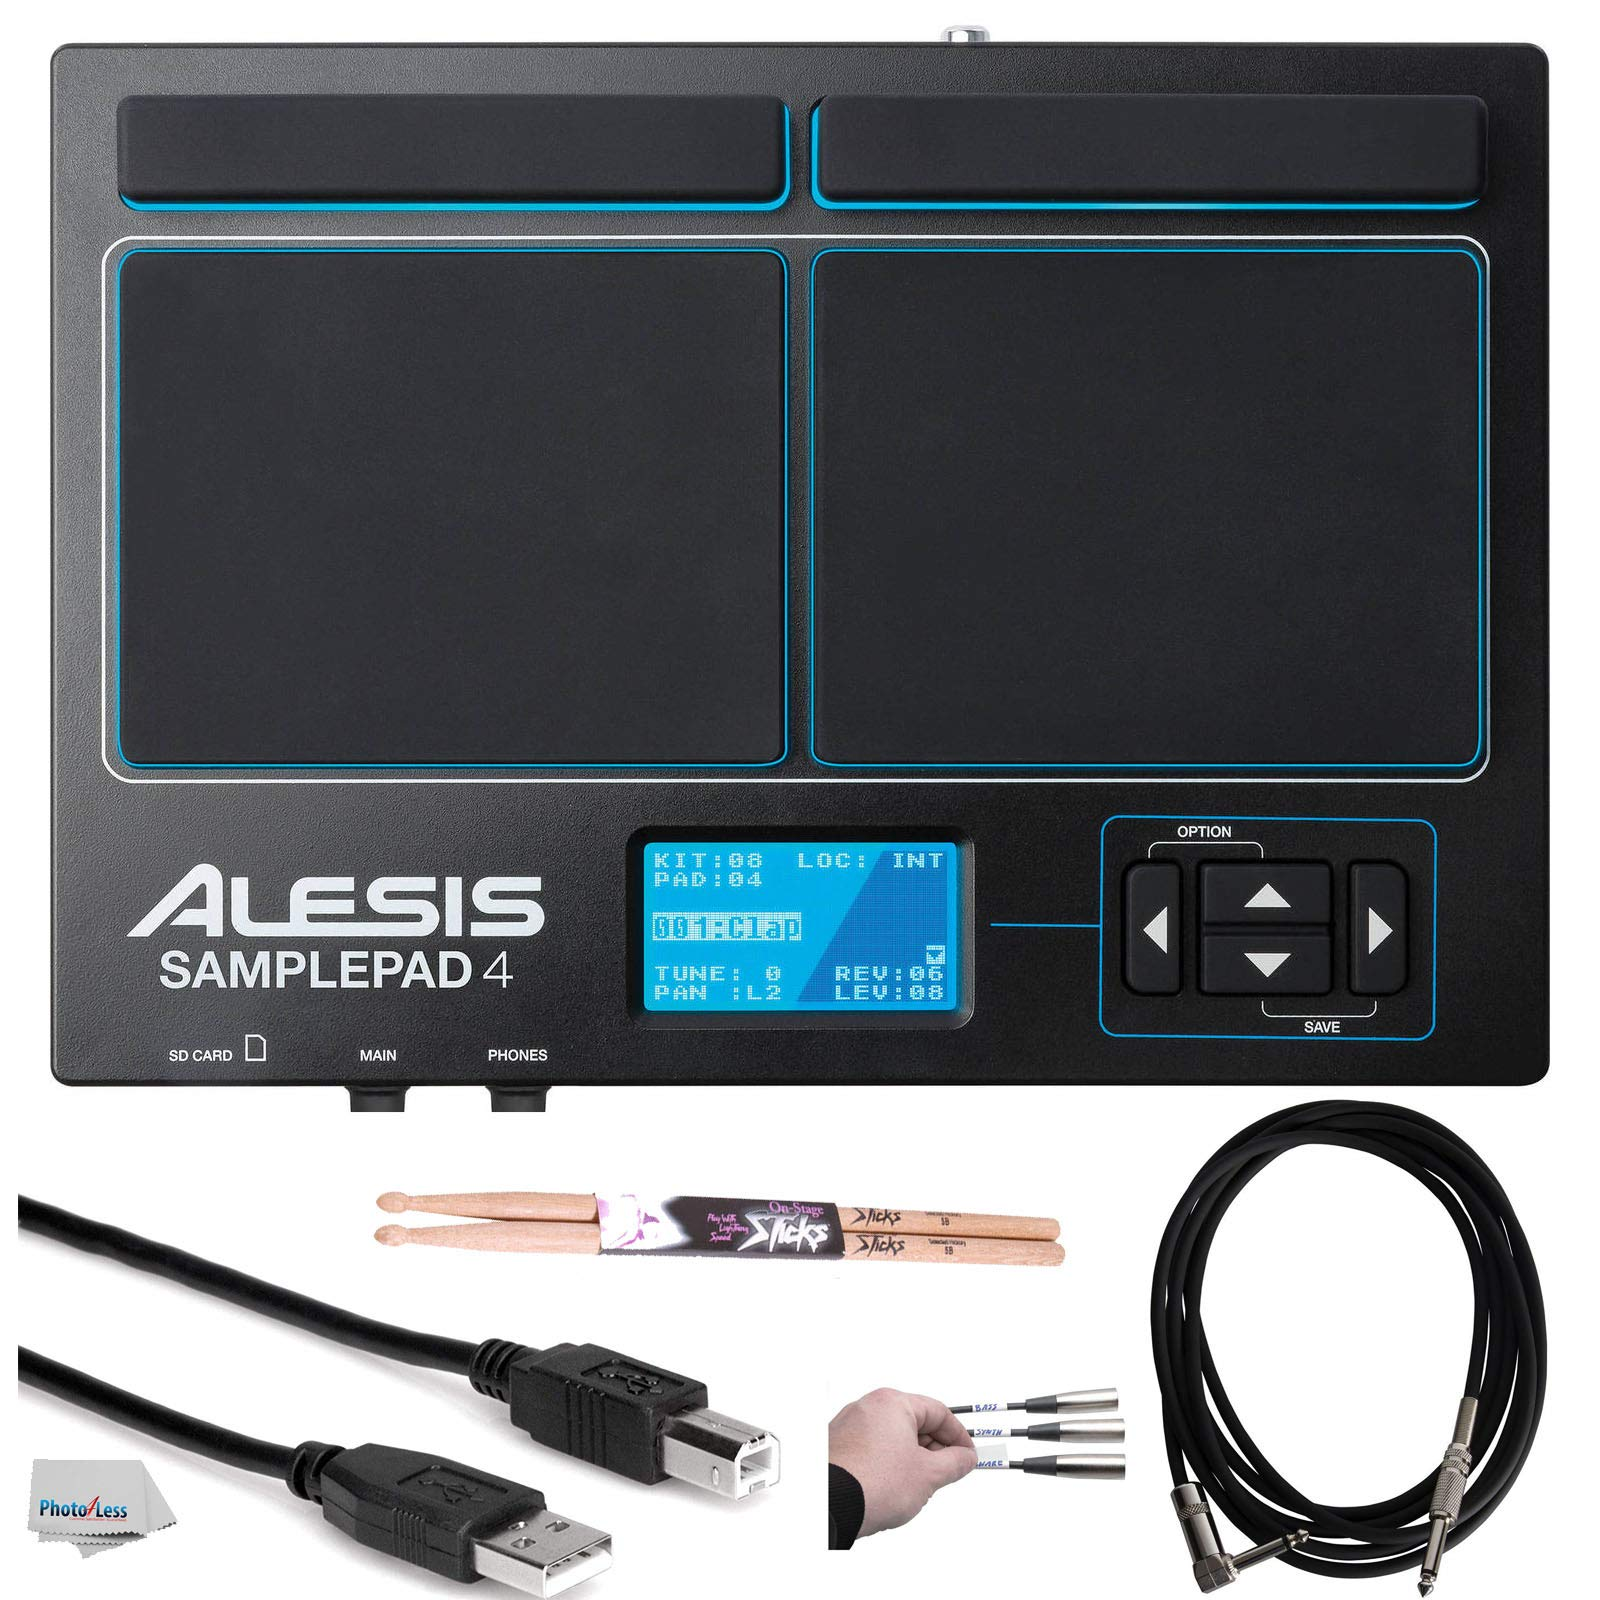 Alesis SamplePad 4 | Compact 4-Pad Percussion and Sample-Triggering Instrument with SD Card Slot + Pair of Drumsticks + Peel-Off Labels + Clean Cloth + Assorted Cables Bundle by Alesis